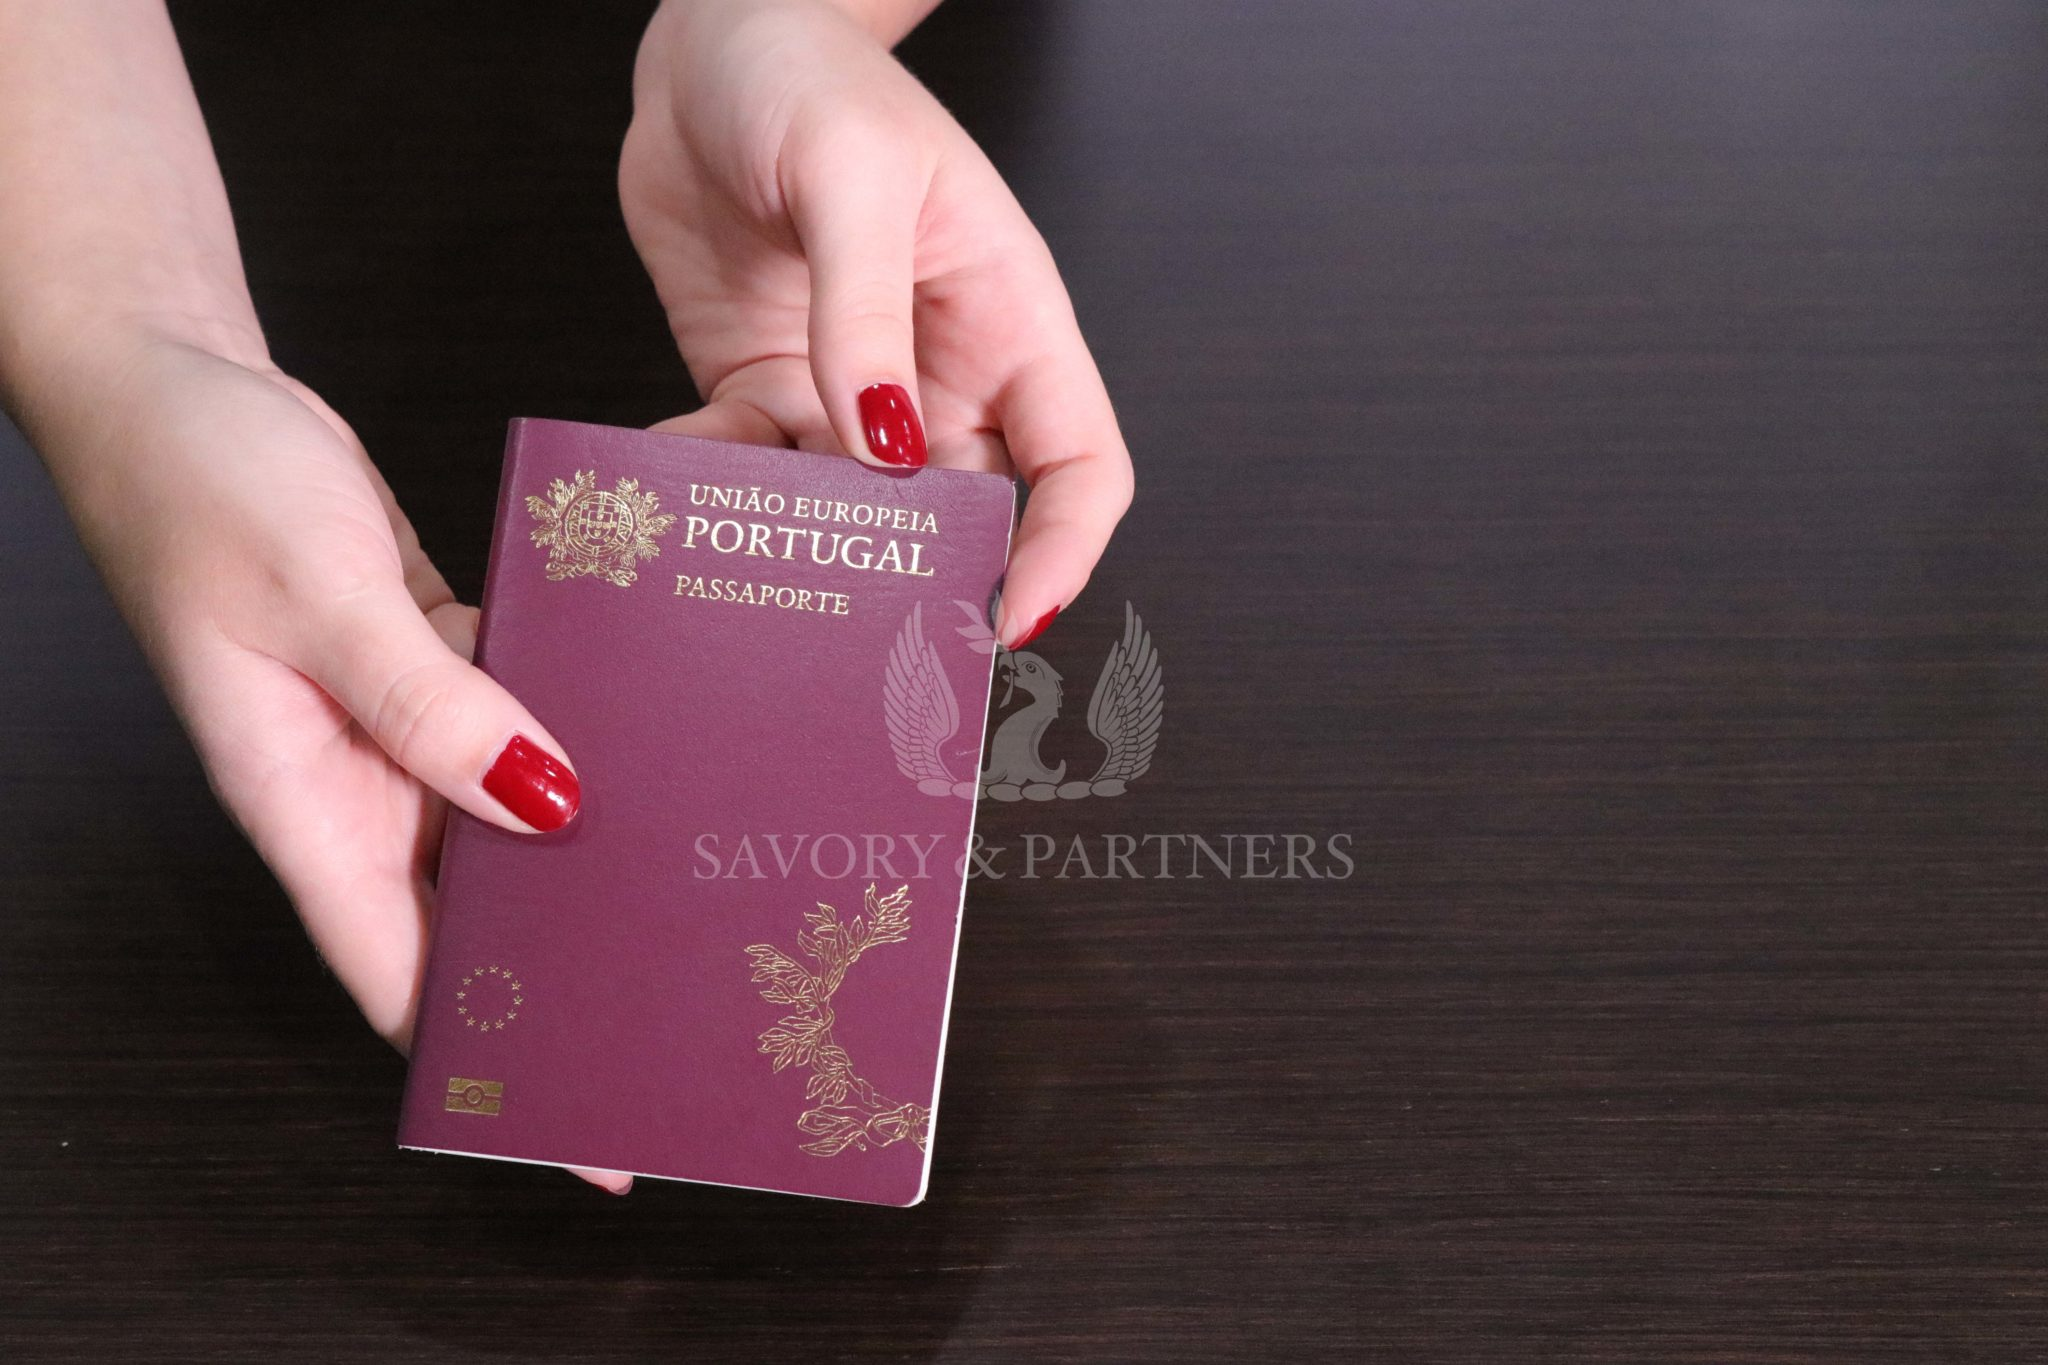 The Portuguese passport is ranked in the top 5 passports in the world for ease of travel.